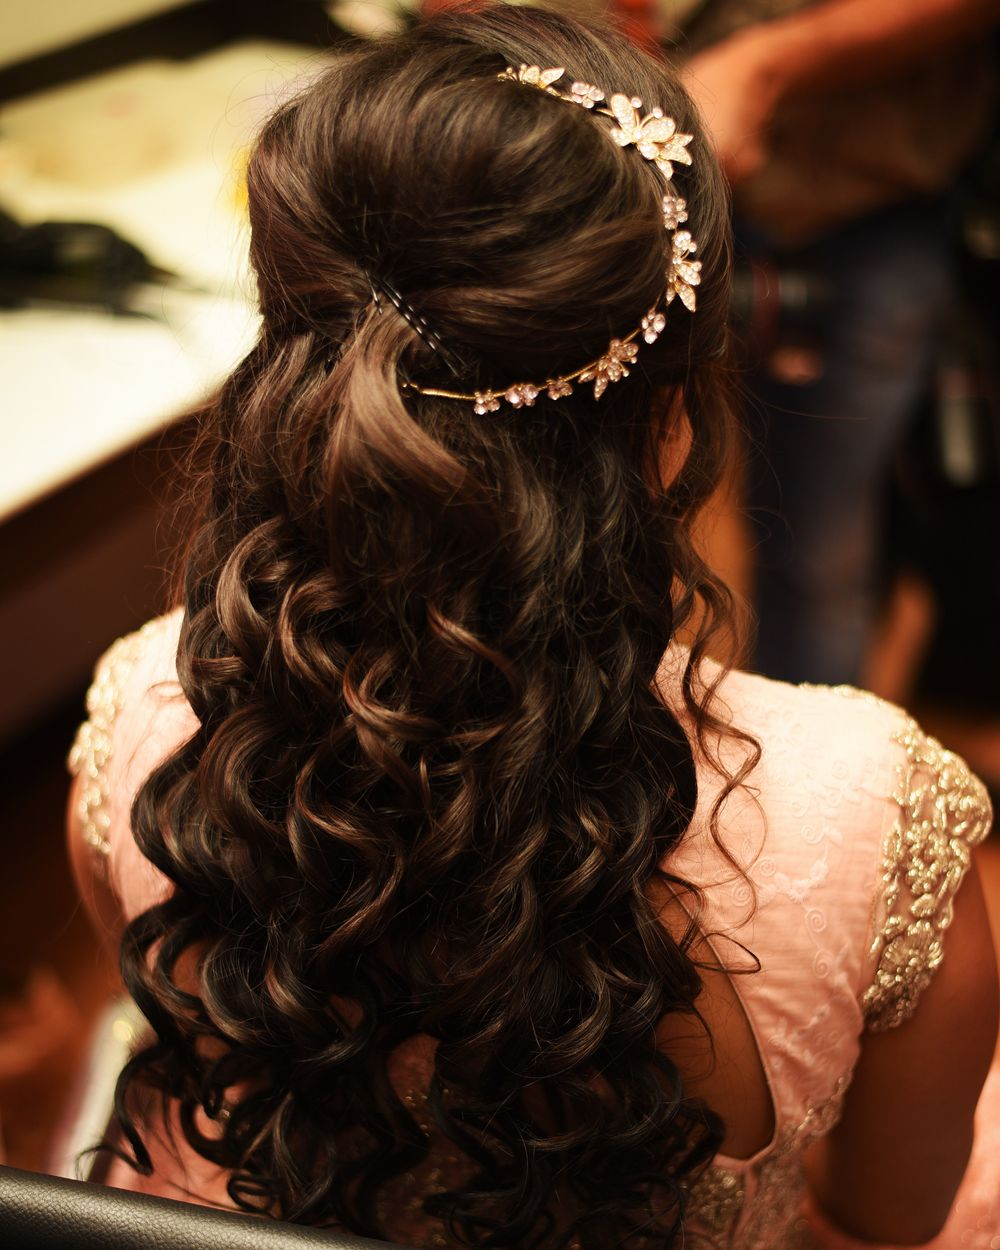 Photo of Engagement Hairstyle with Side Hair Ornament